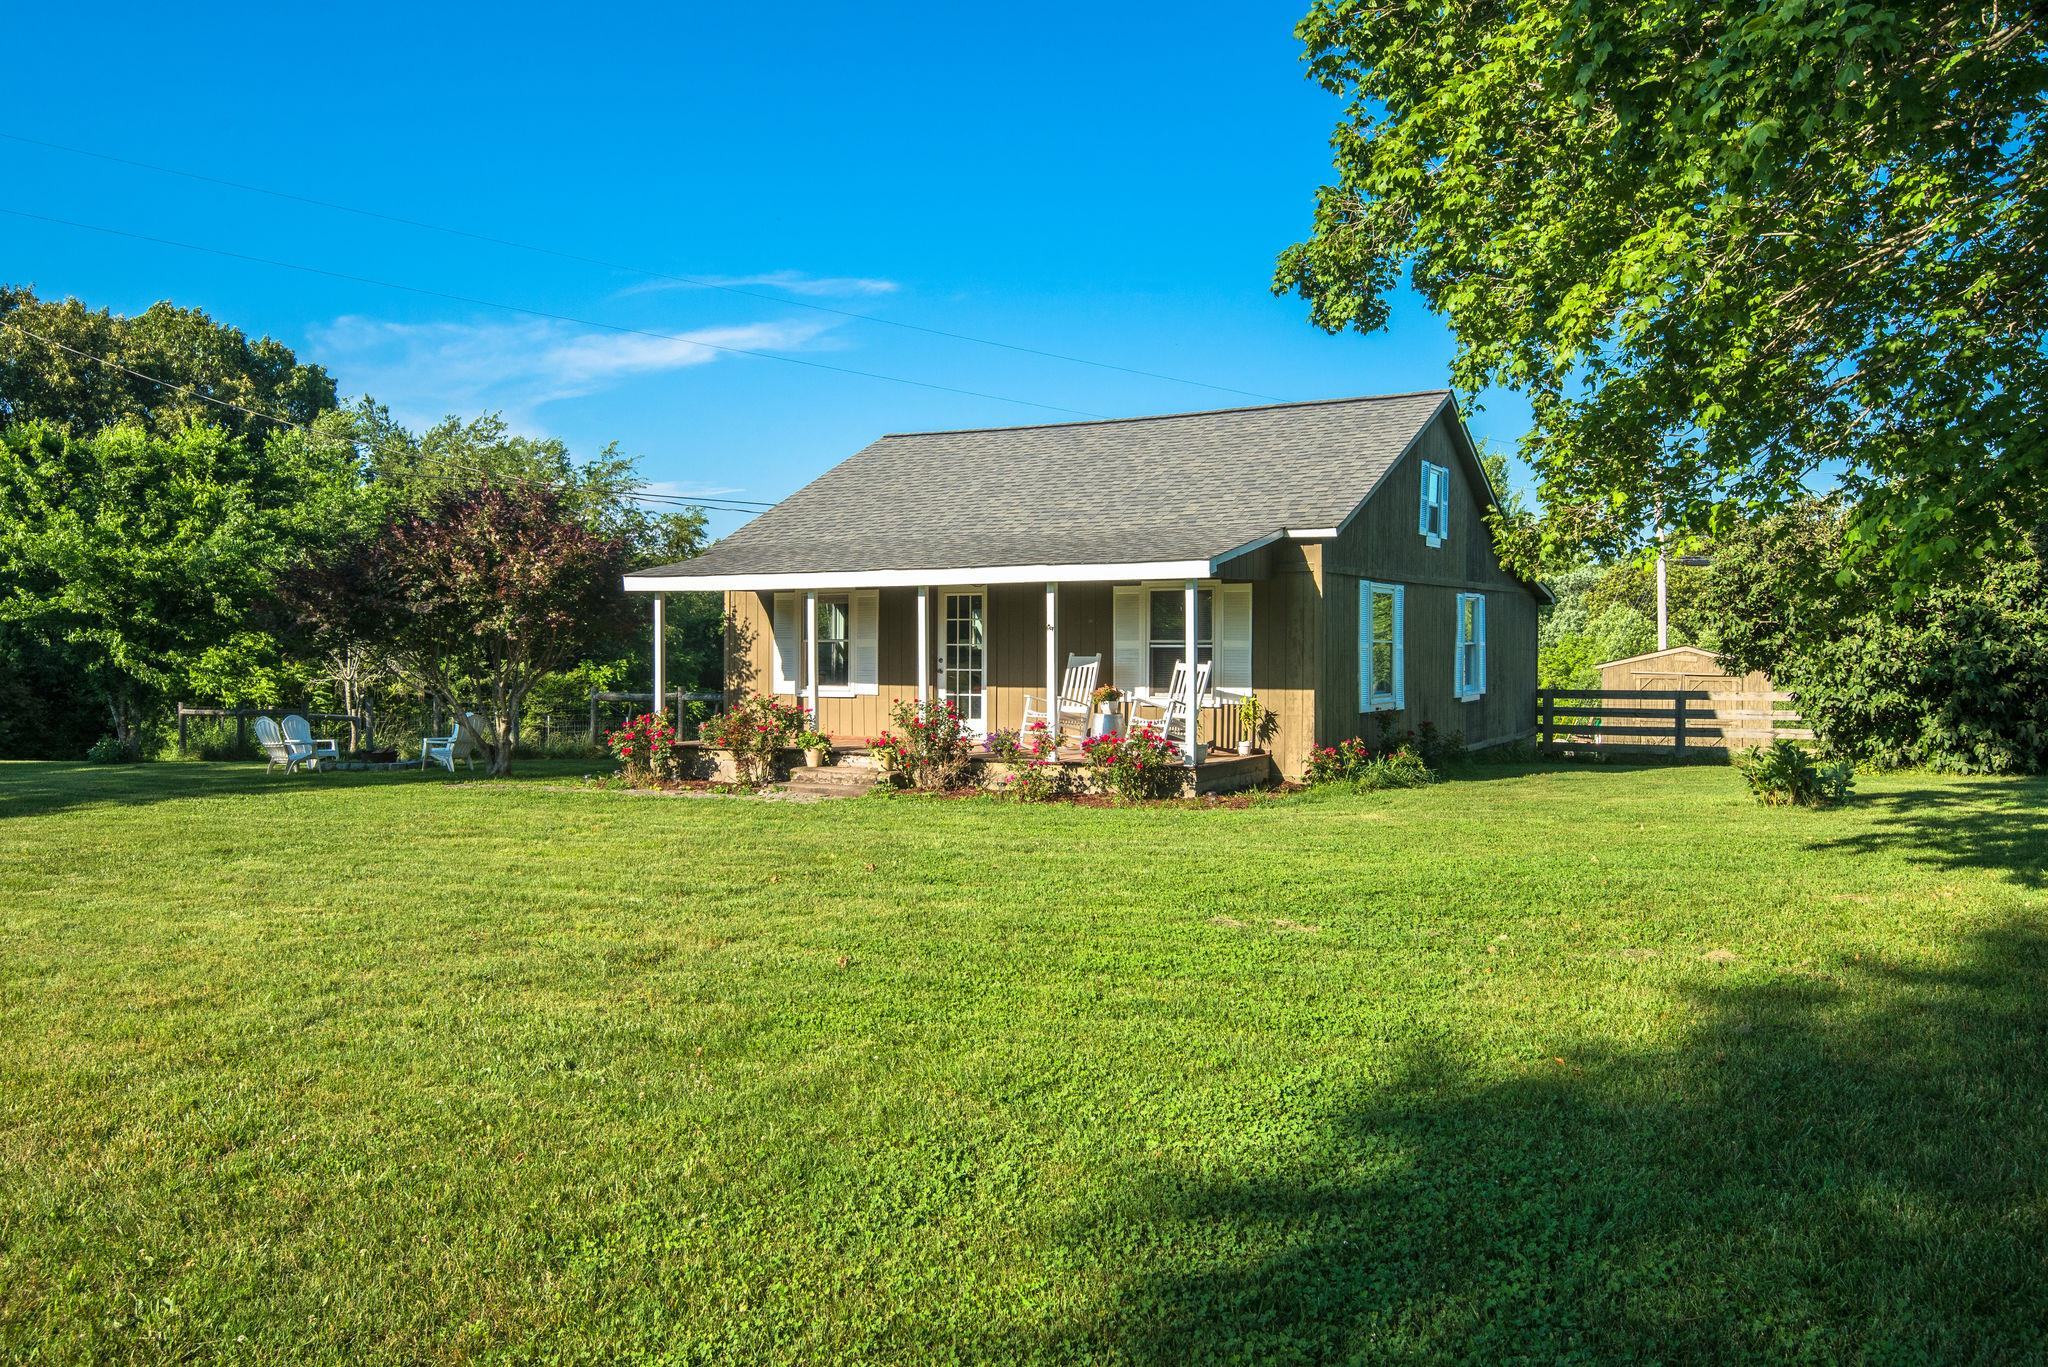 7920 Daugherty Capley Rd, Primm Springs, TN 38476 - Primm Springs, TN real estate listing